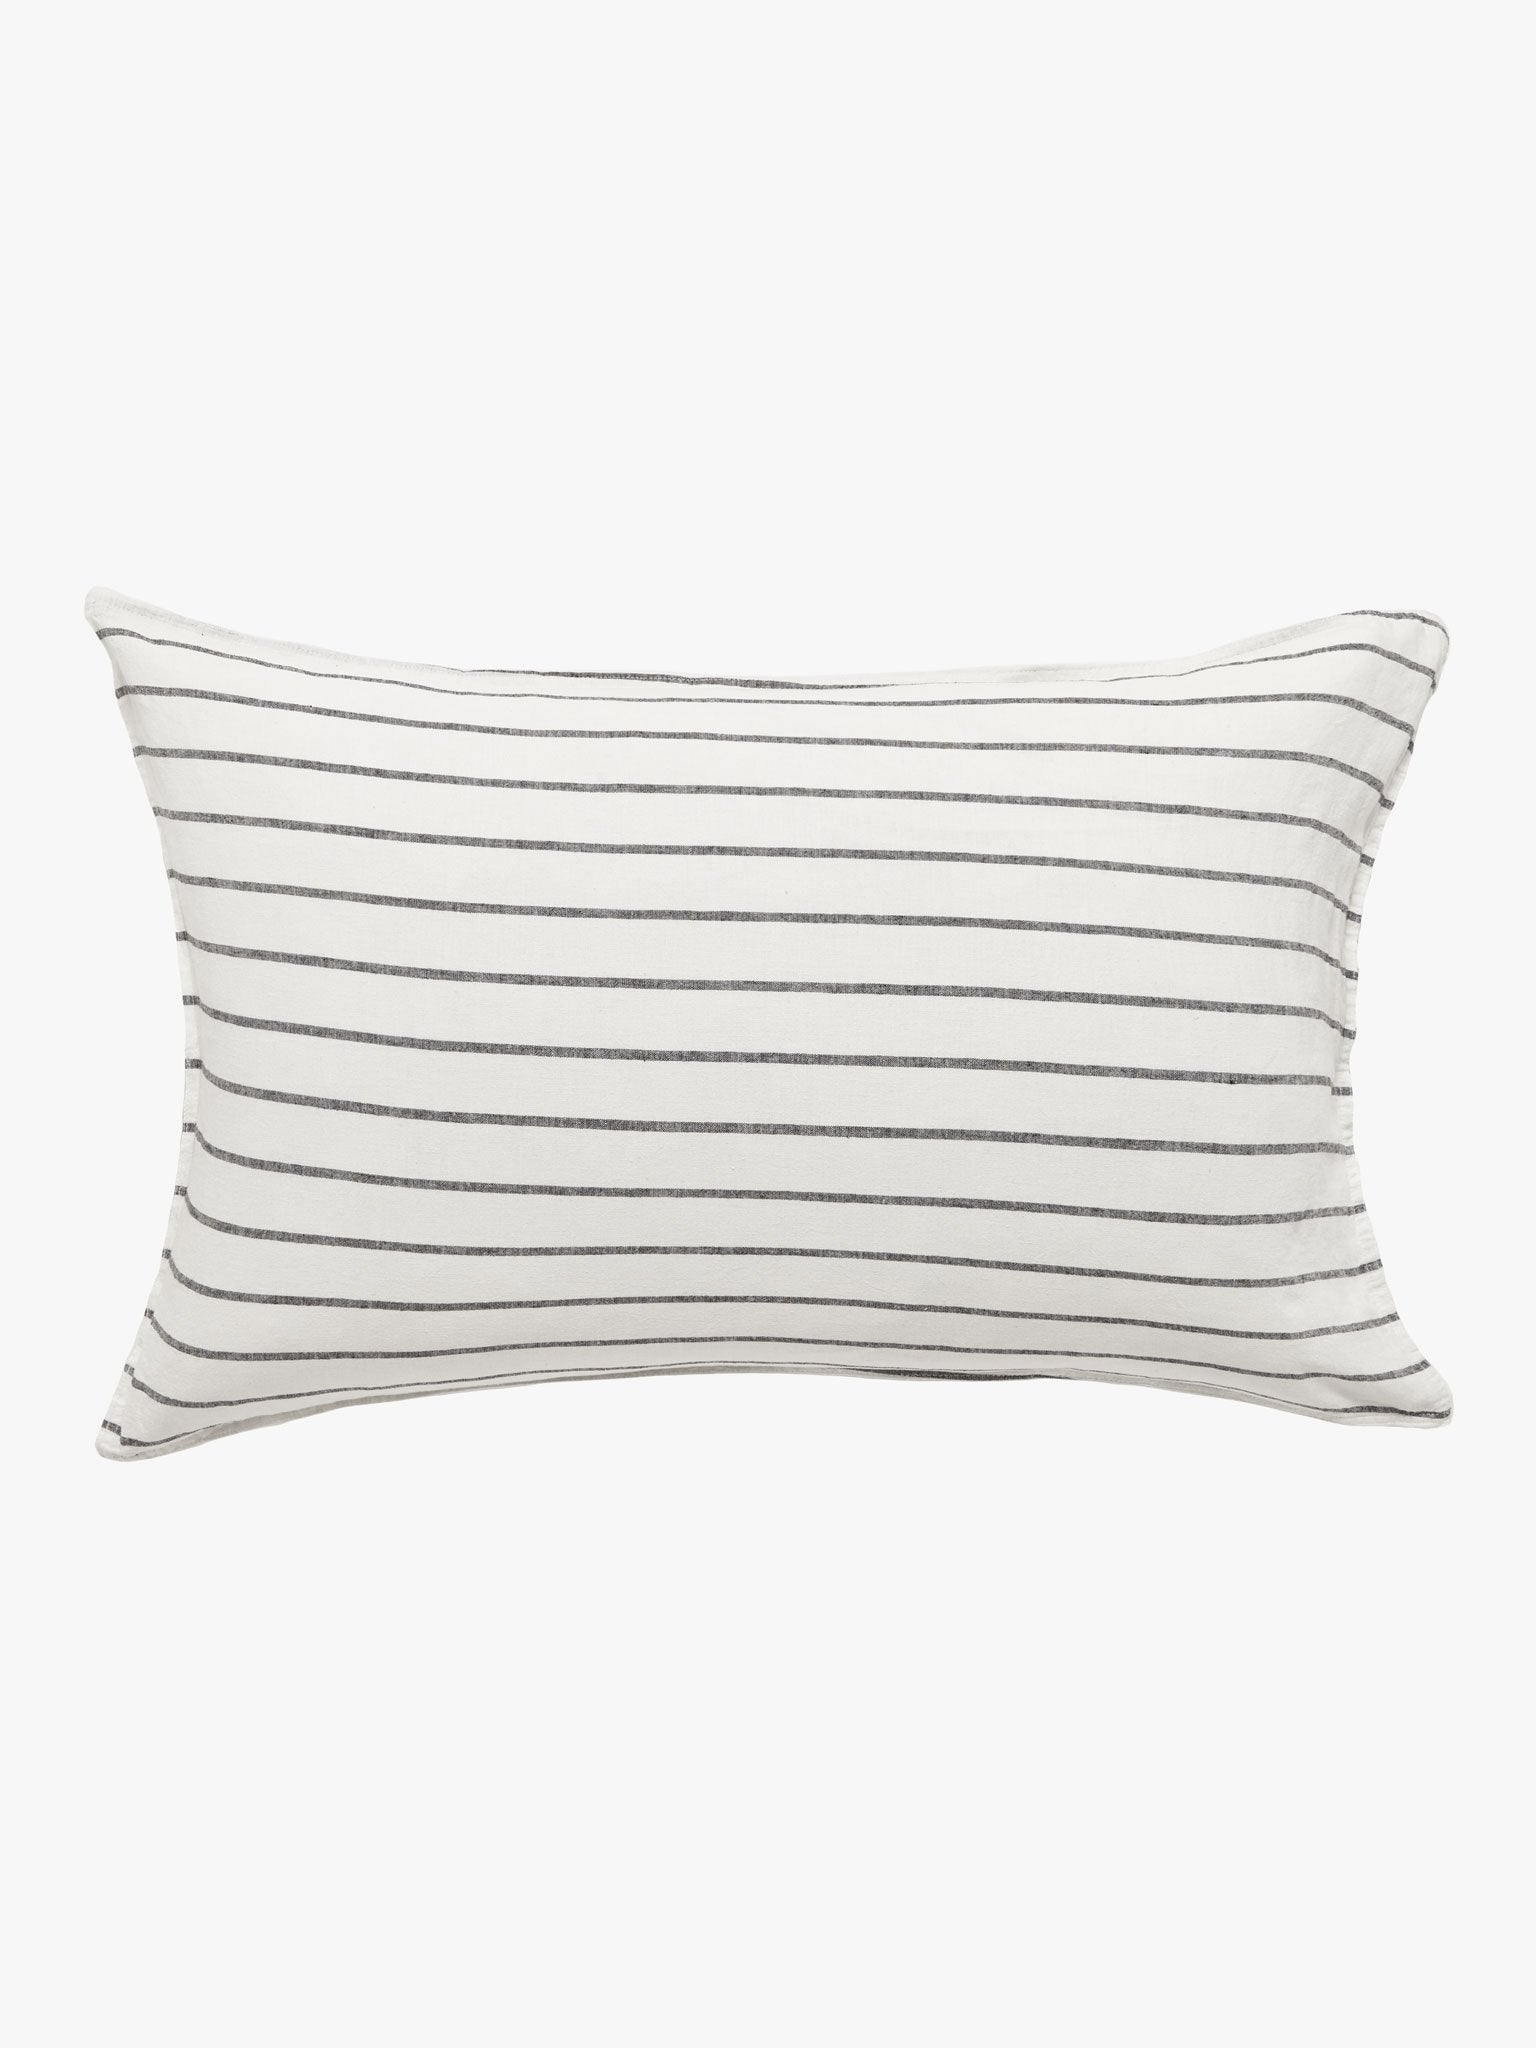 Loft Pillowcases Pillowcase L&M Home Standard (Pair)